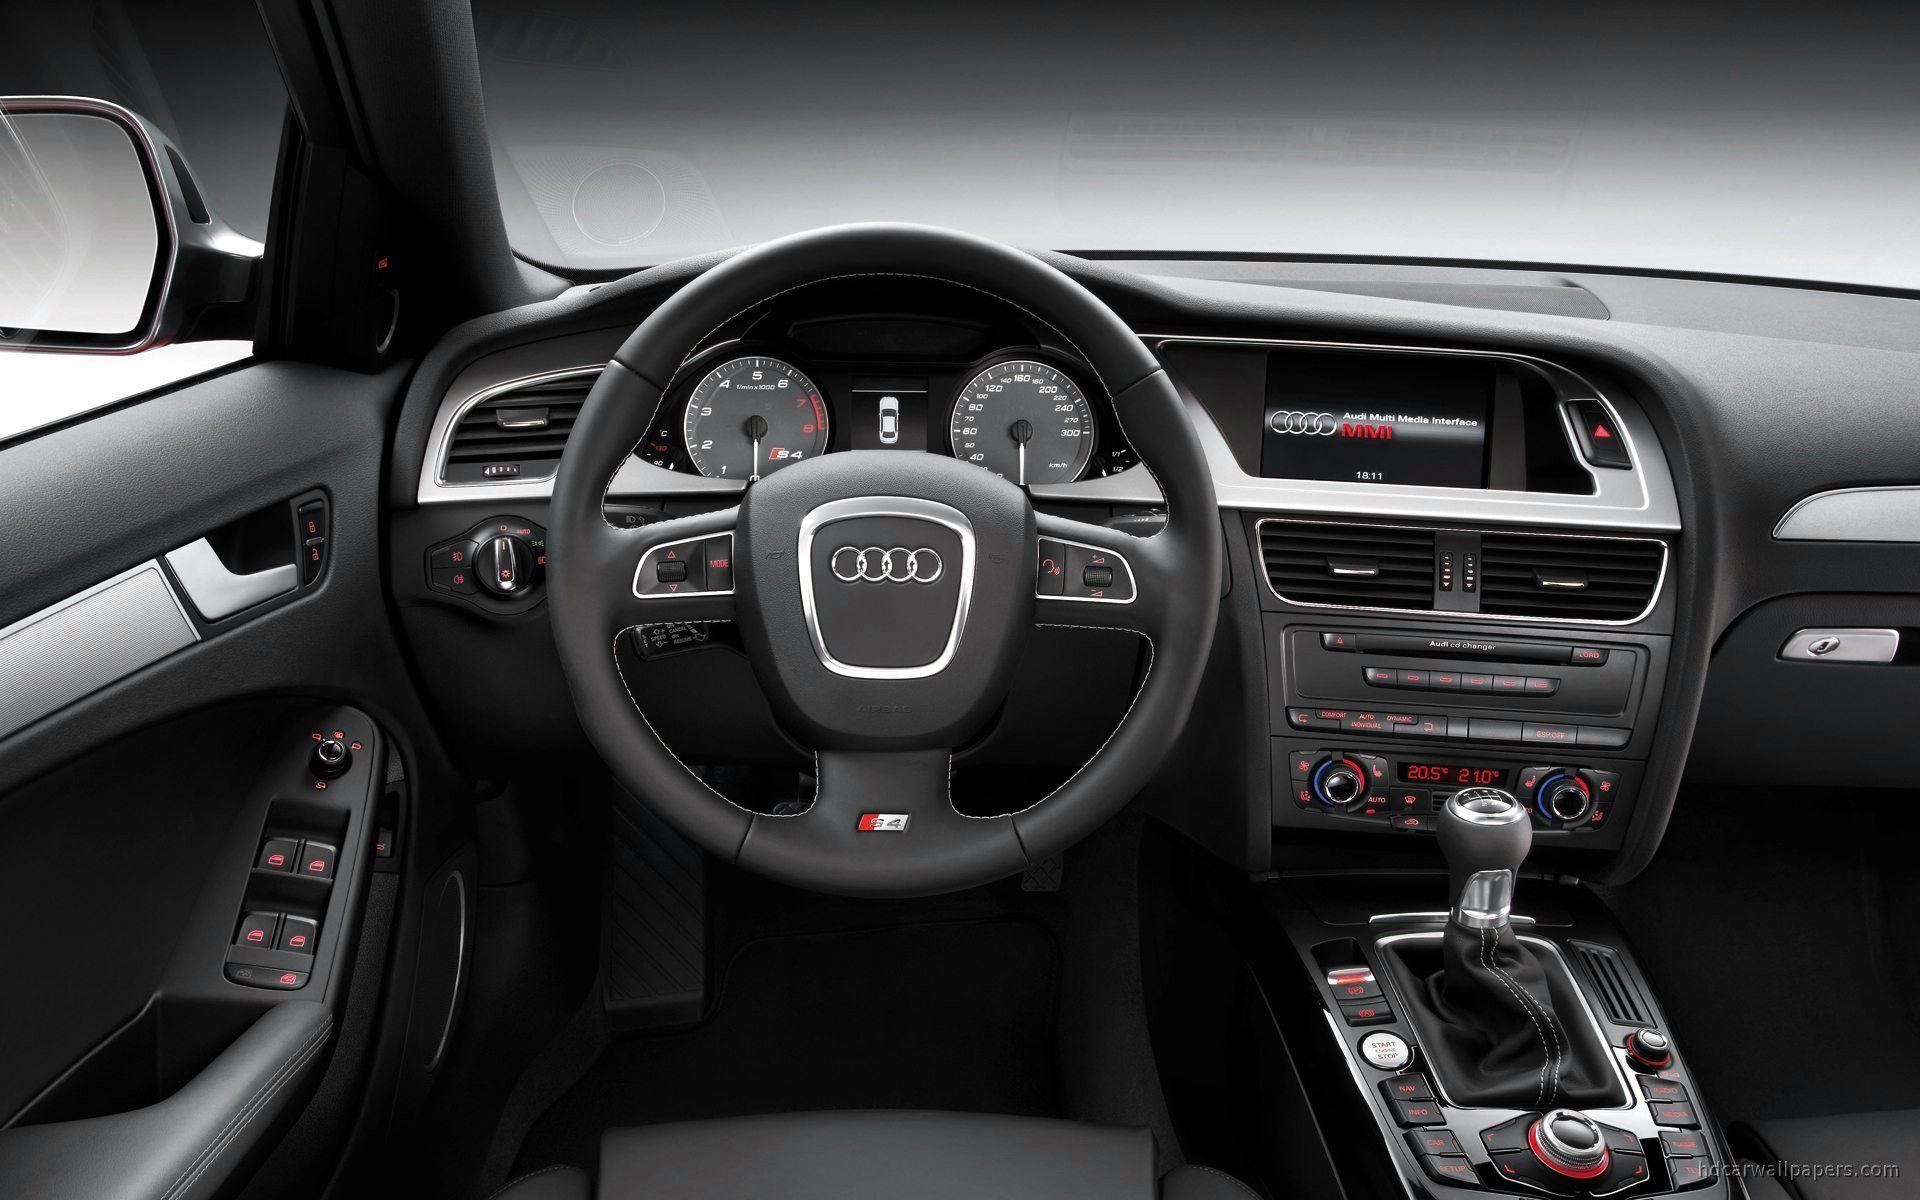 2009 Audi S4 Interior Wallpapers